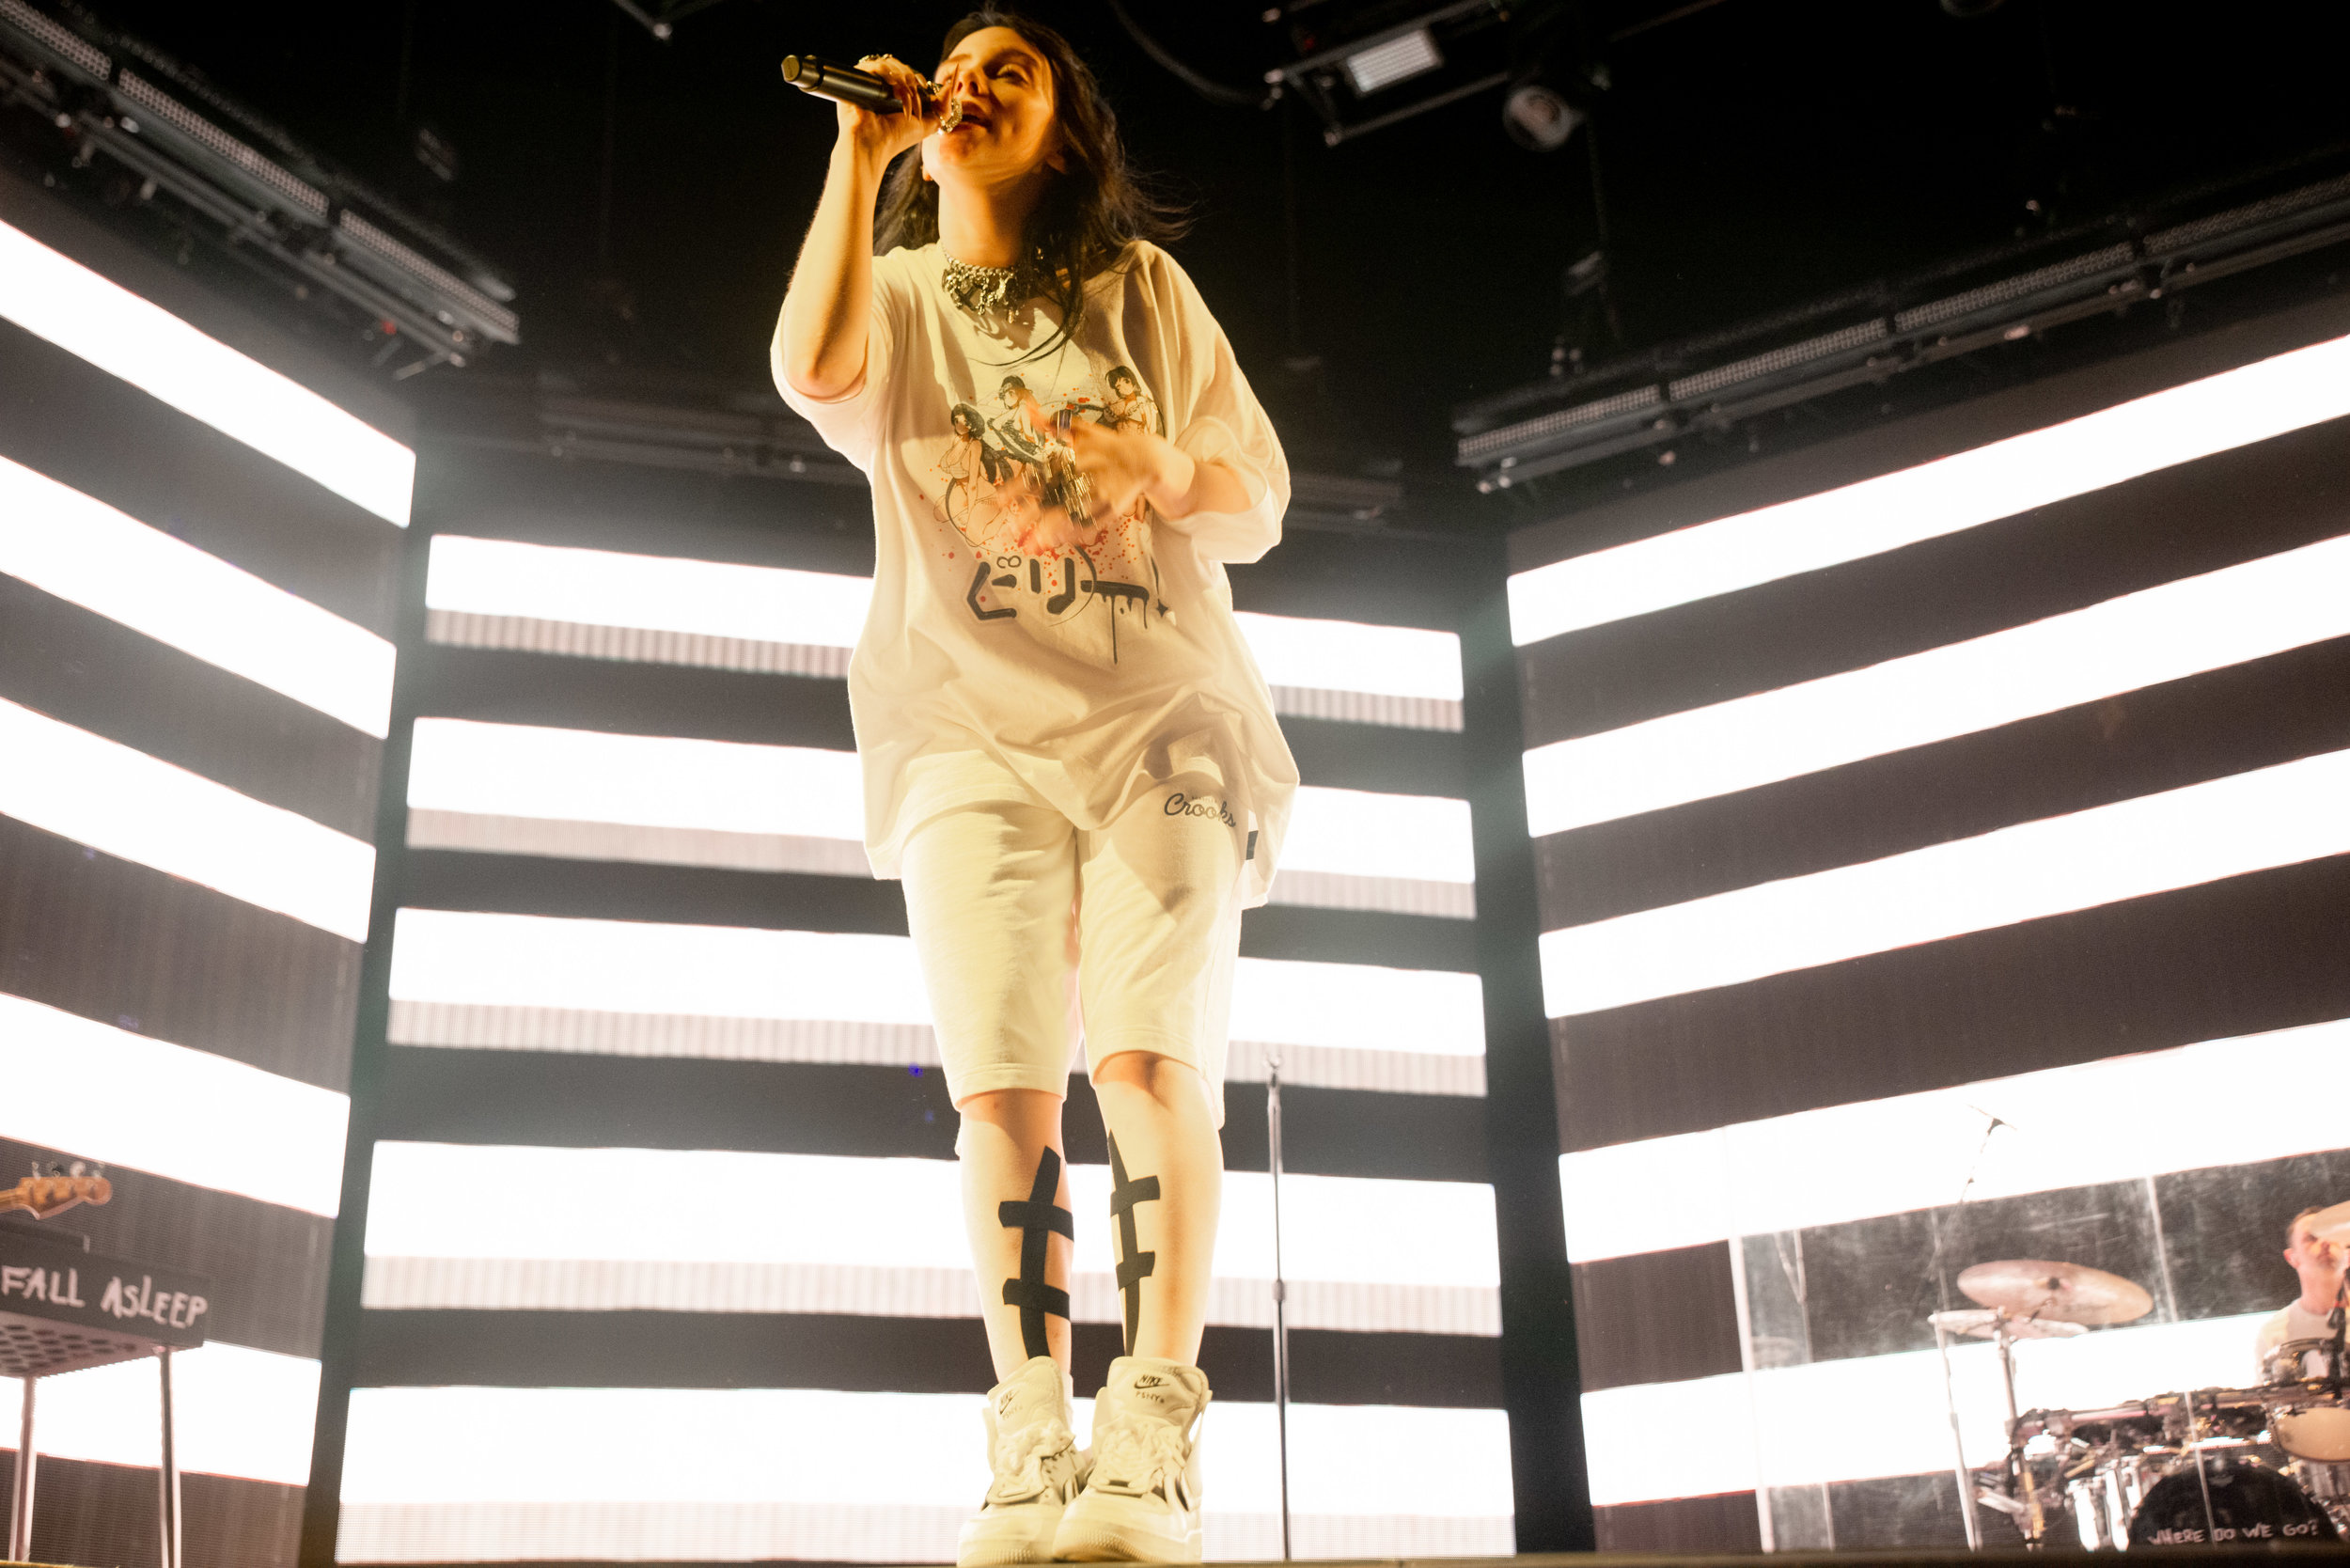 billie-eilish-equirk-13.jpg